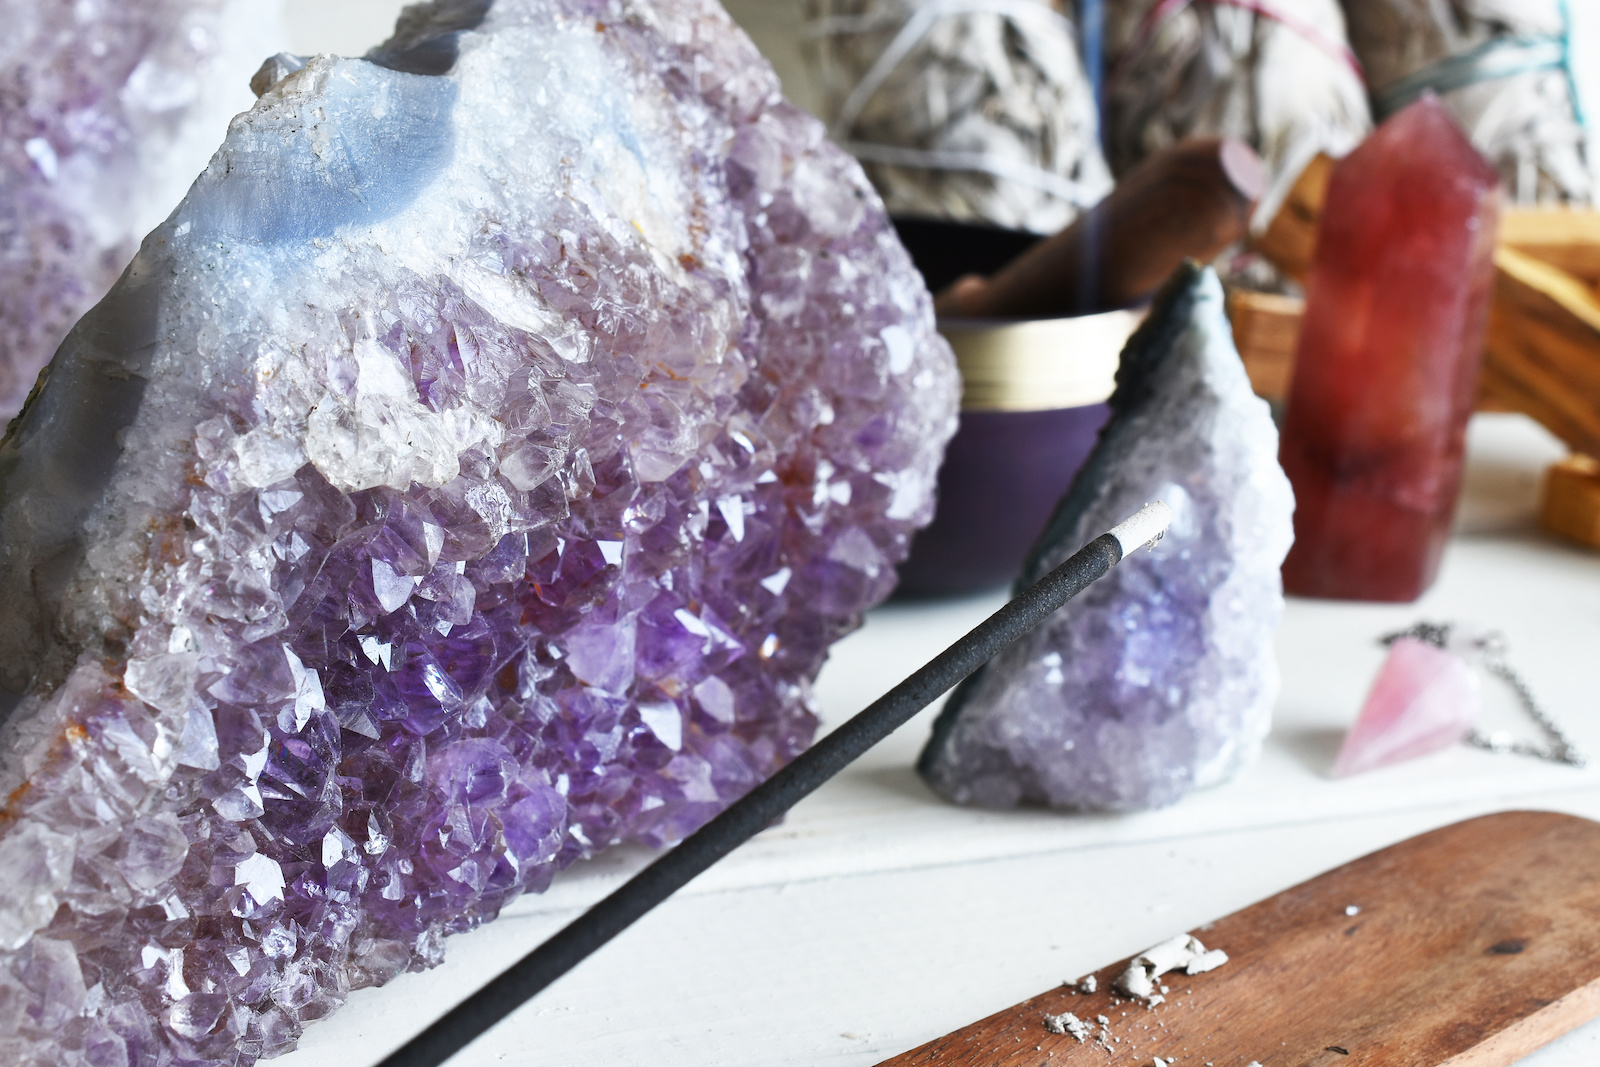 How to Use Incense to Cleanse Healing Crystals